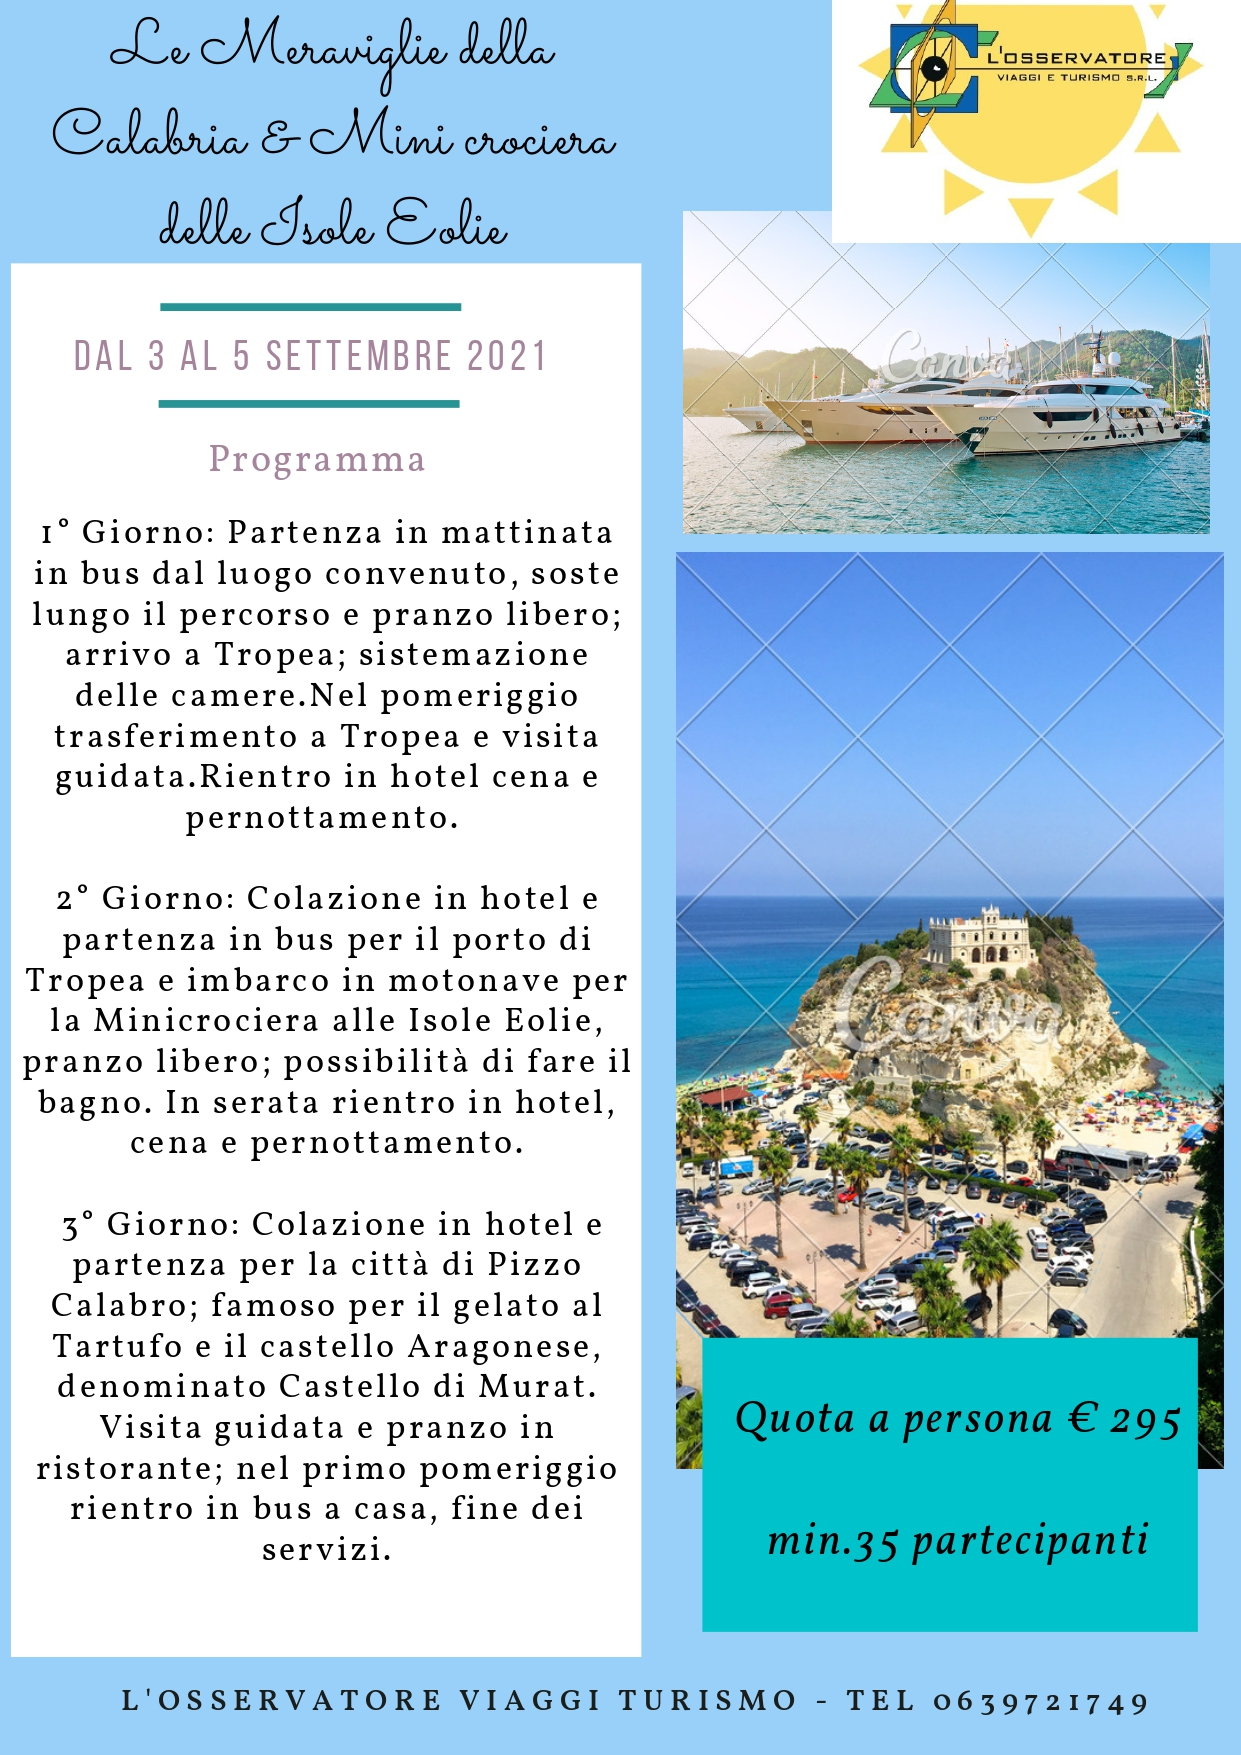 WEEK-END SETTEMBRE 2021 IN  CALABRIA E ISOLE EOLIE